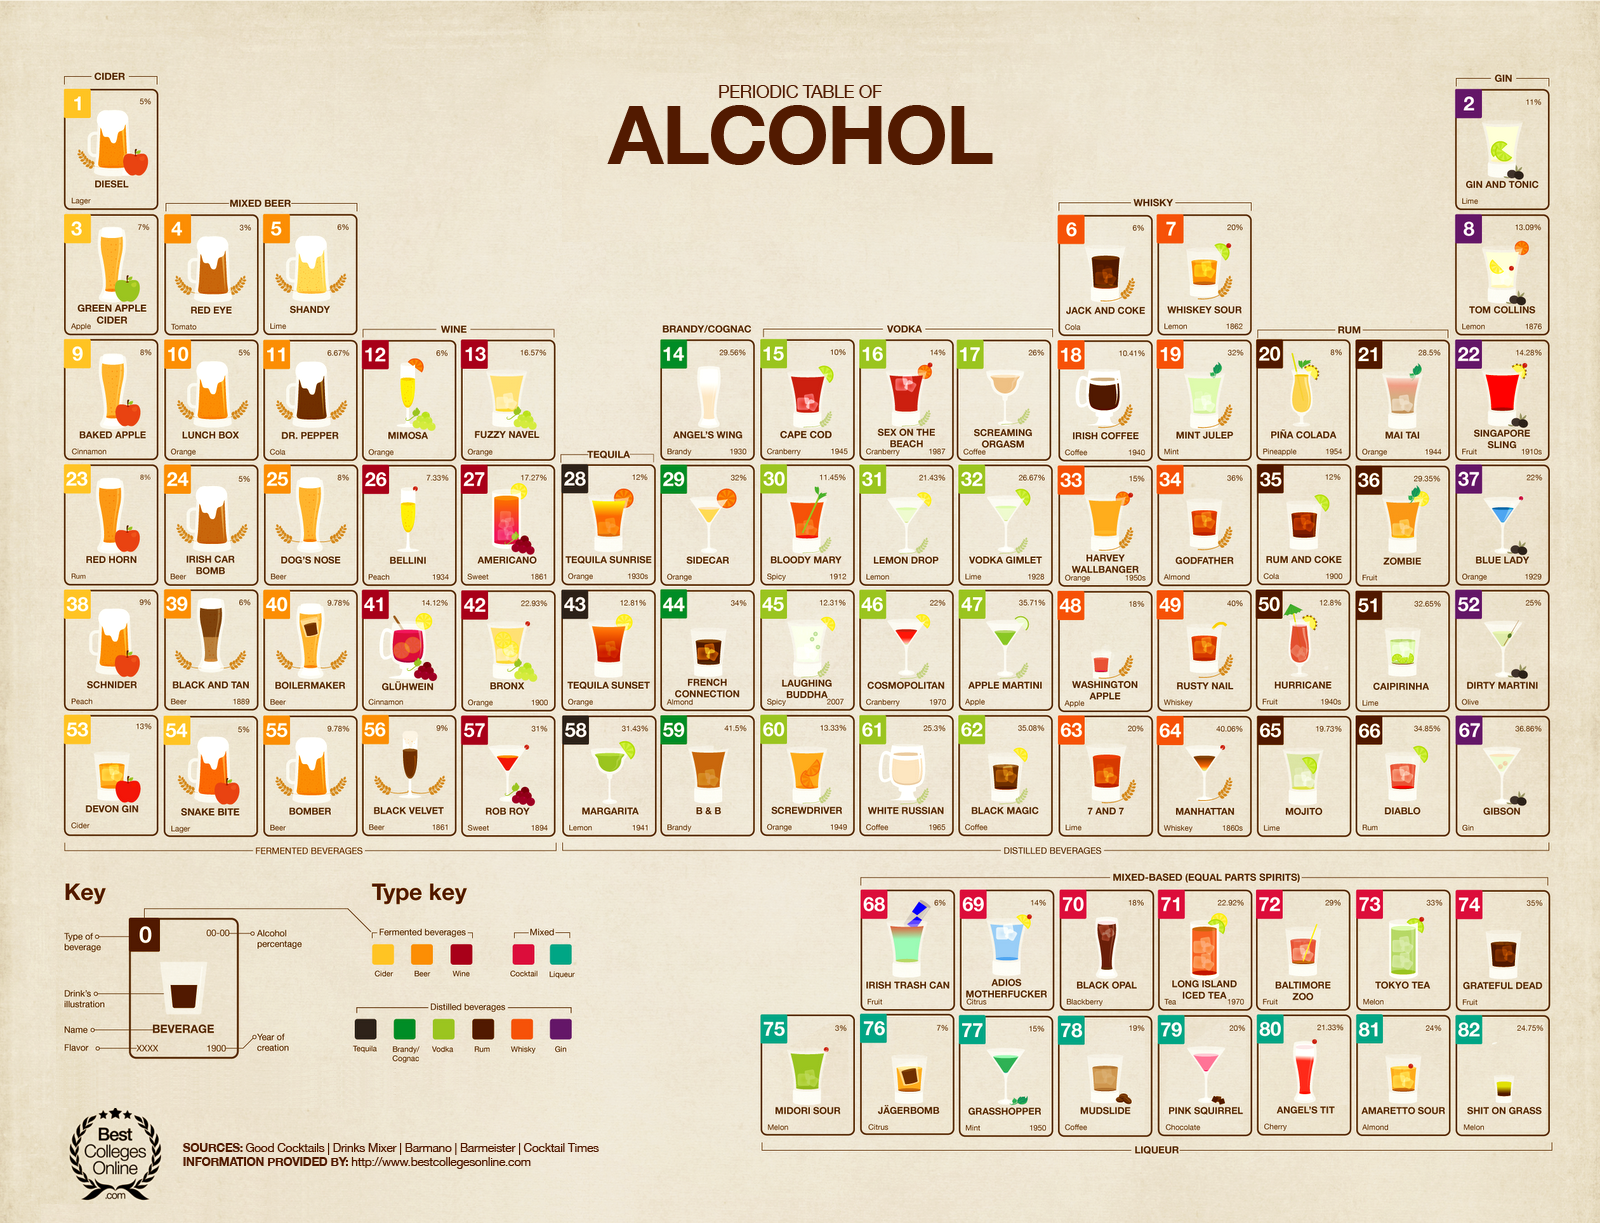 The best periodic table ever stuff to try pinterest periodic periodic table of alcohol52125c3245a7dg 16001223 from http yahoofooddrinking 101 for nerds 69899695891ml urtaz Gallery